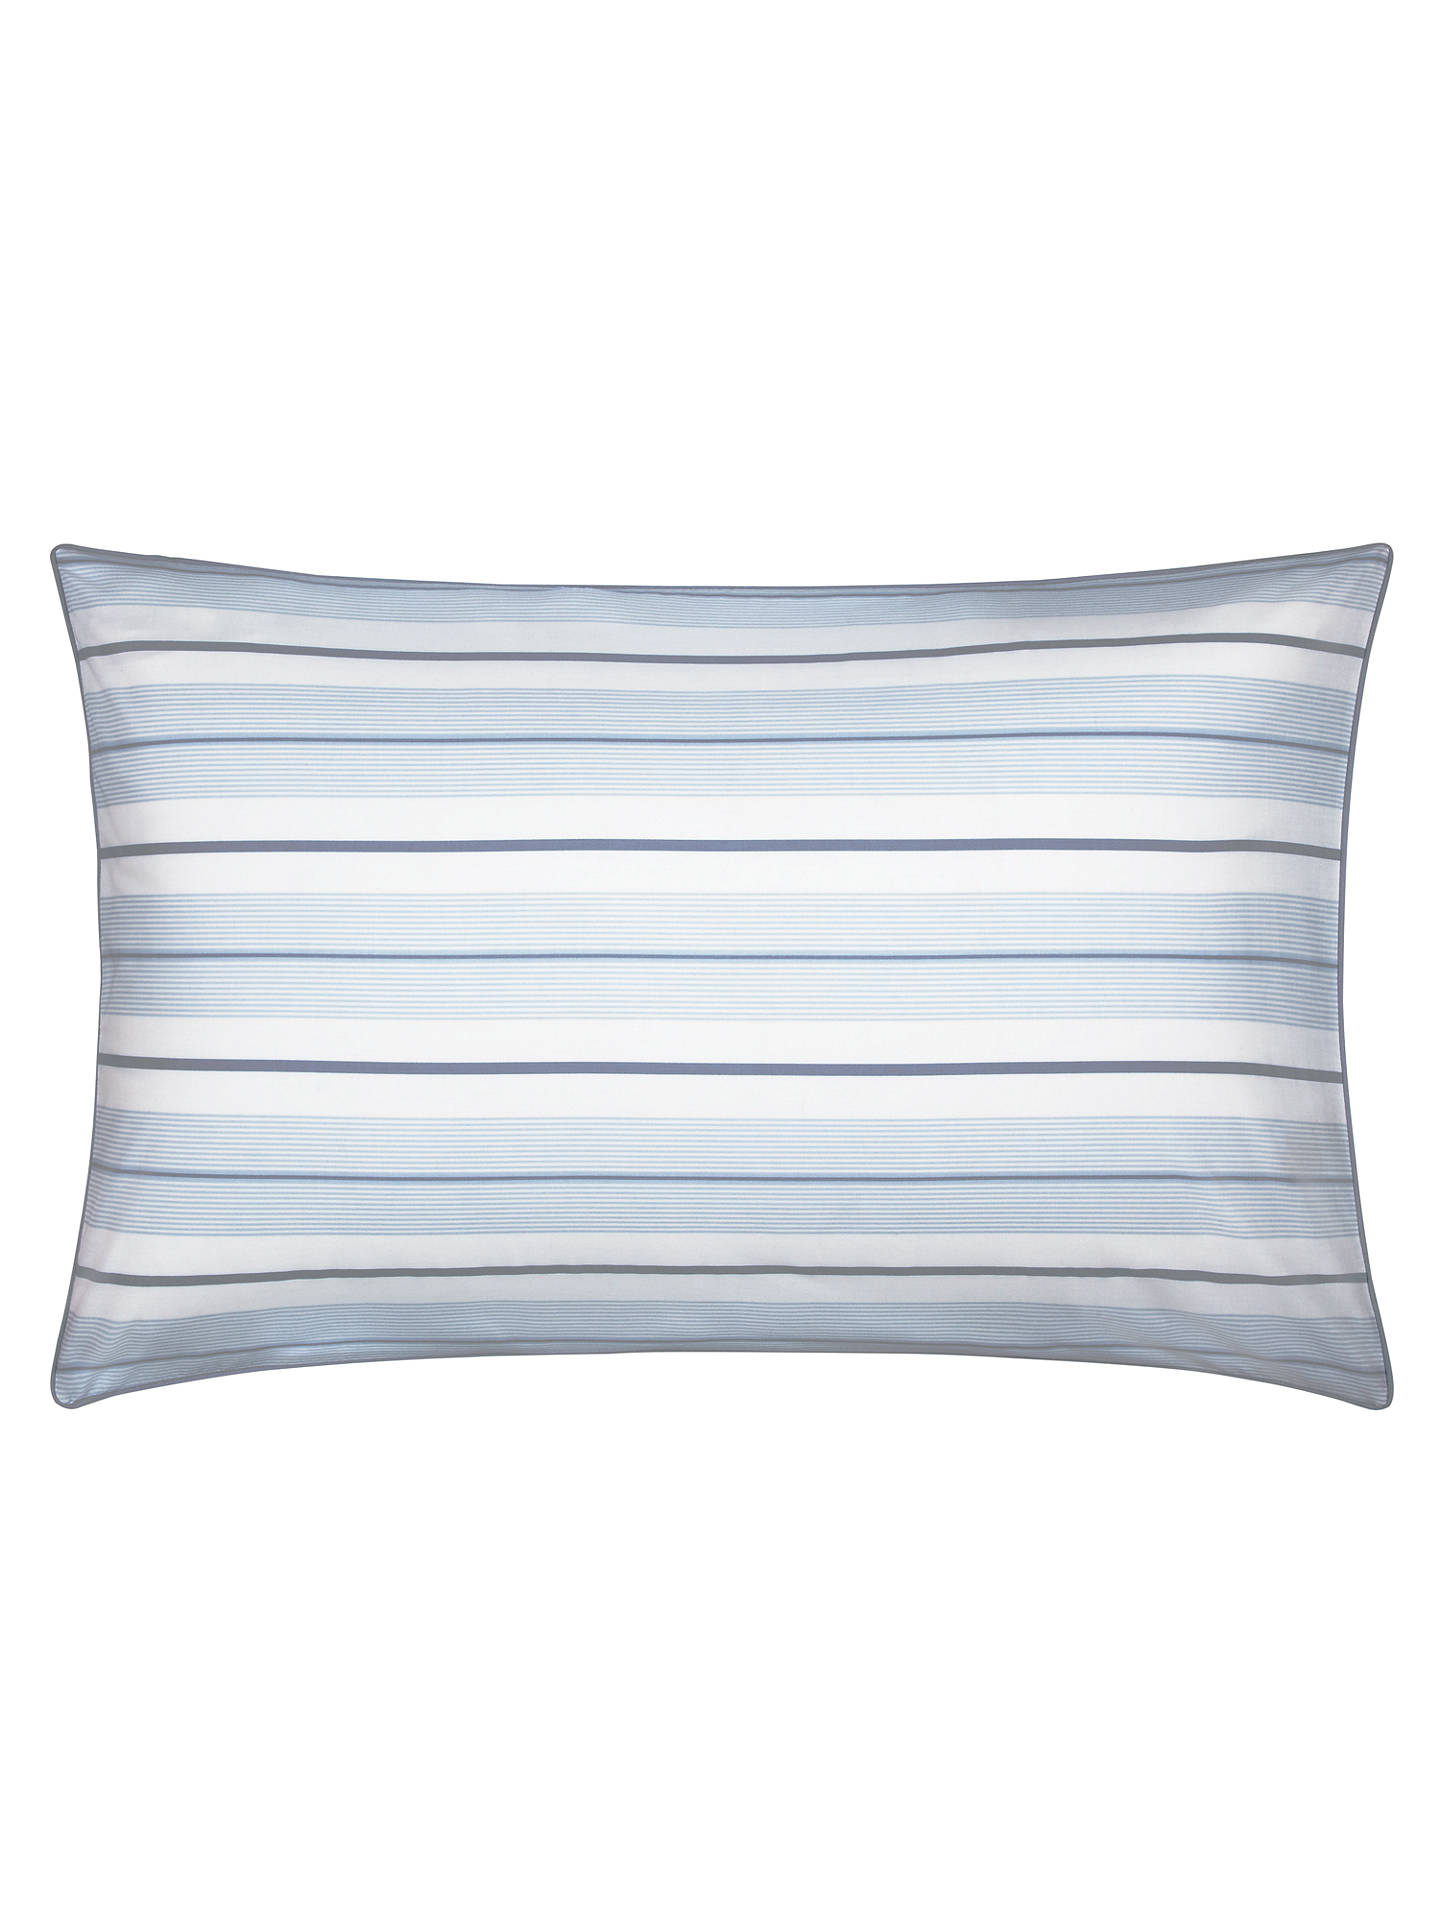 BuyJohn Lewis & Partners Easy Care Fine Stripe Duvet Cover and Pillowcase Set, Blue, Single Online at johnlewis.com